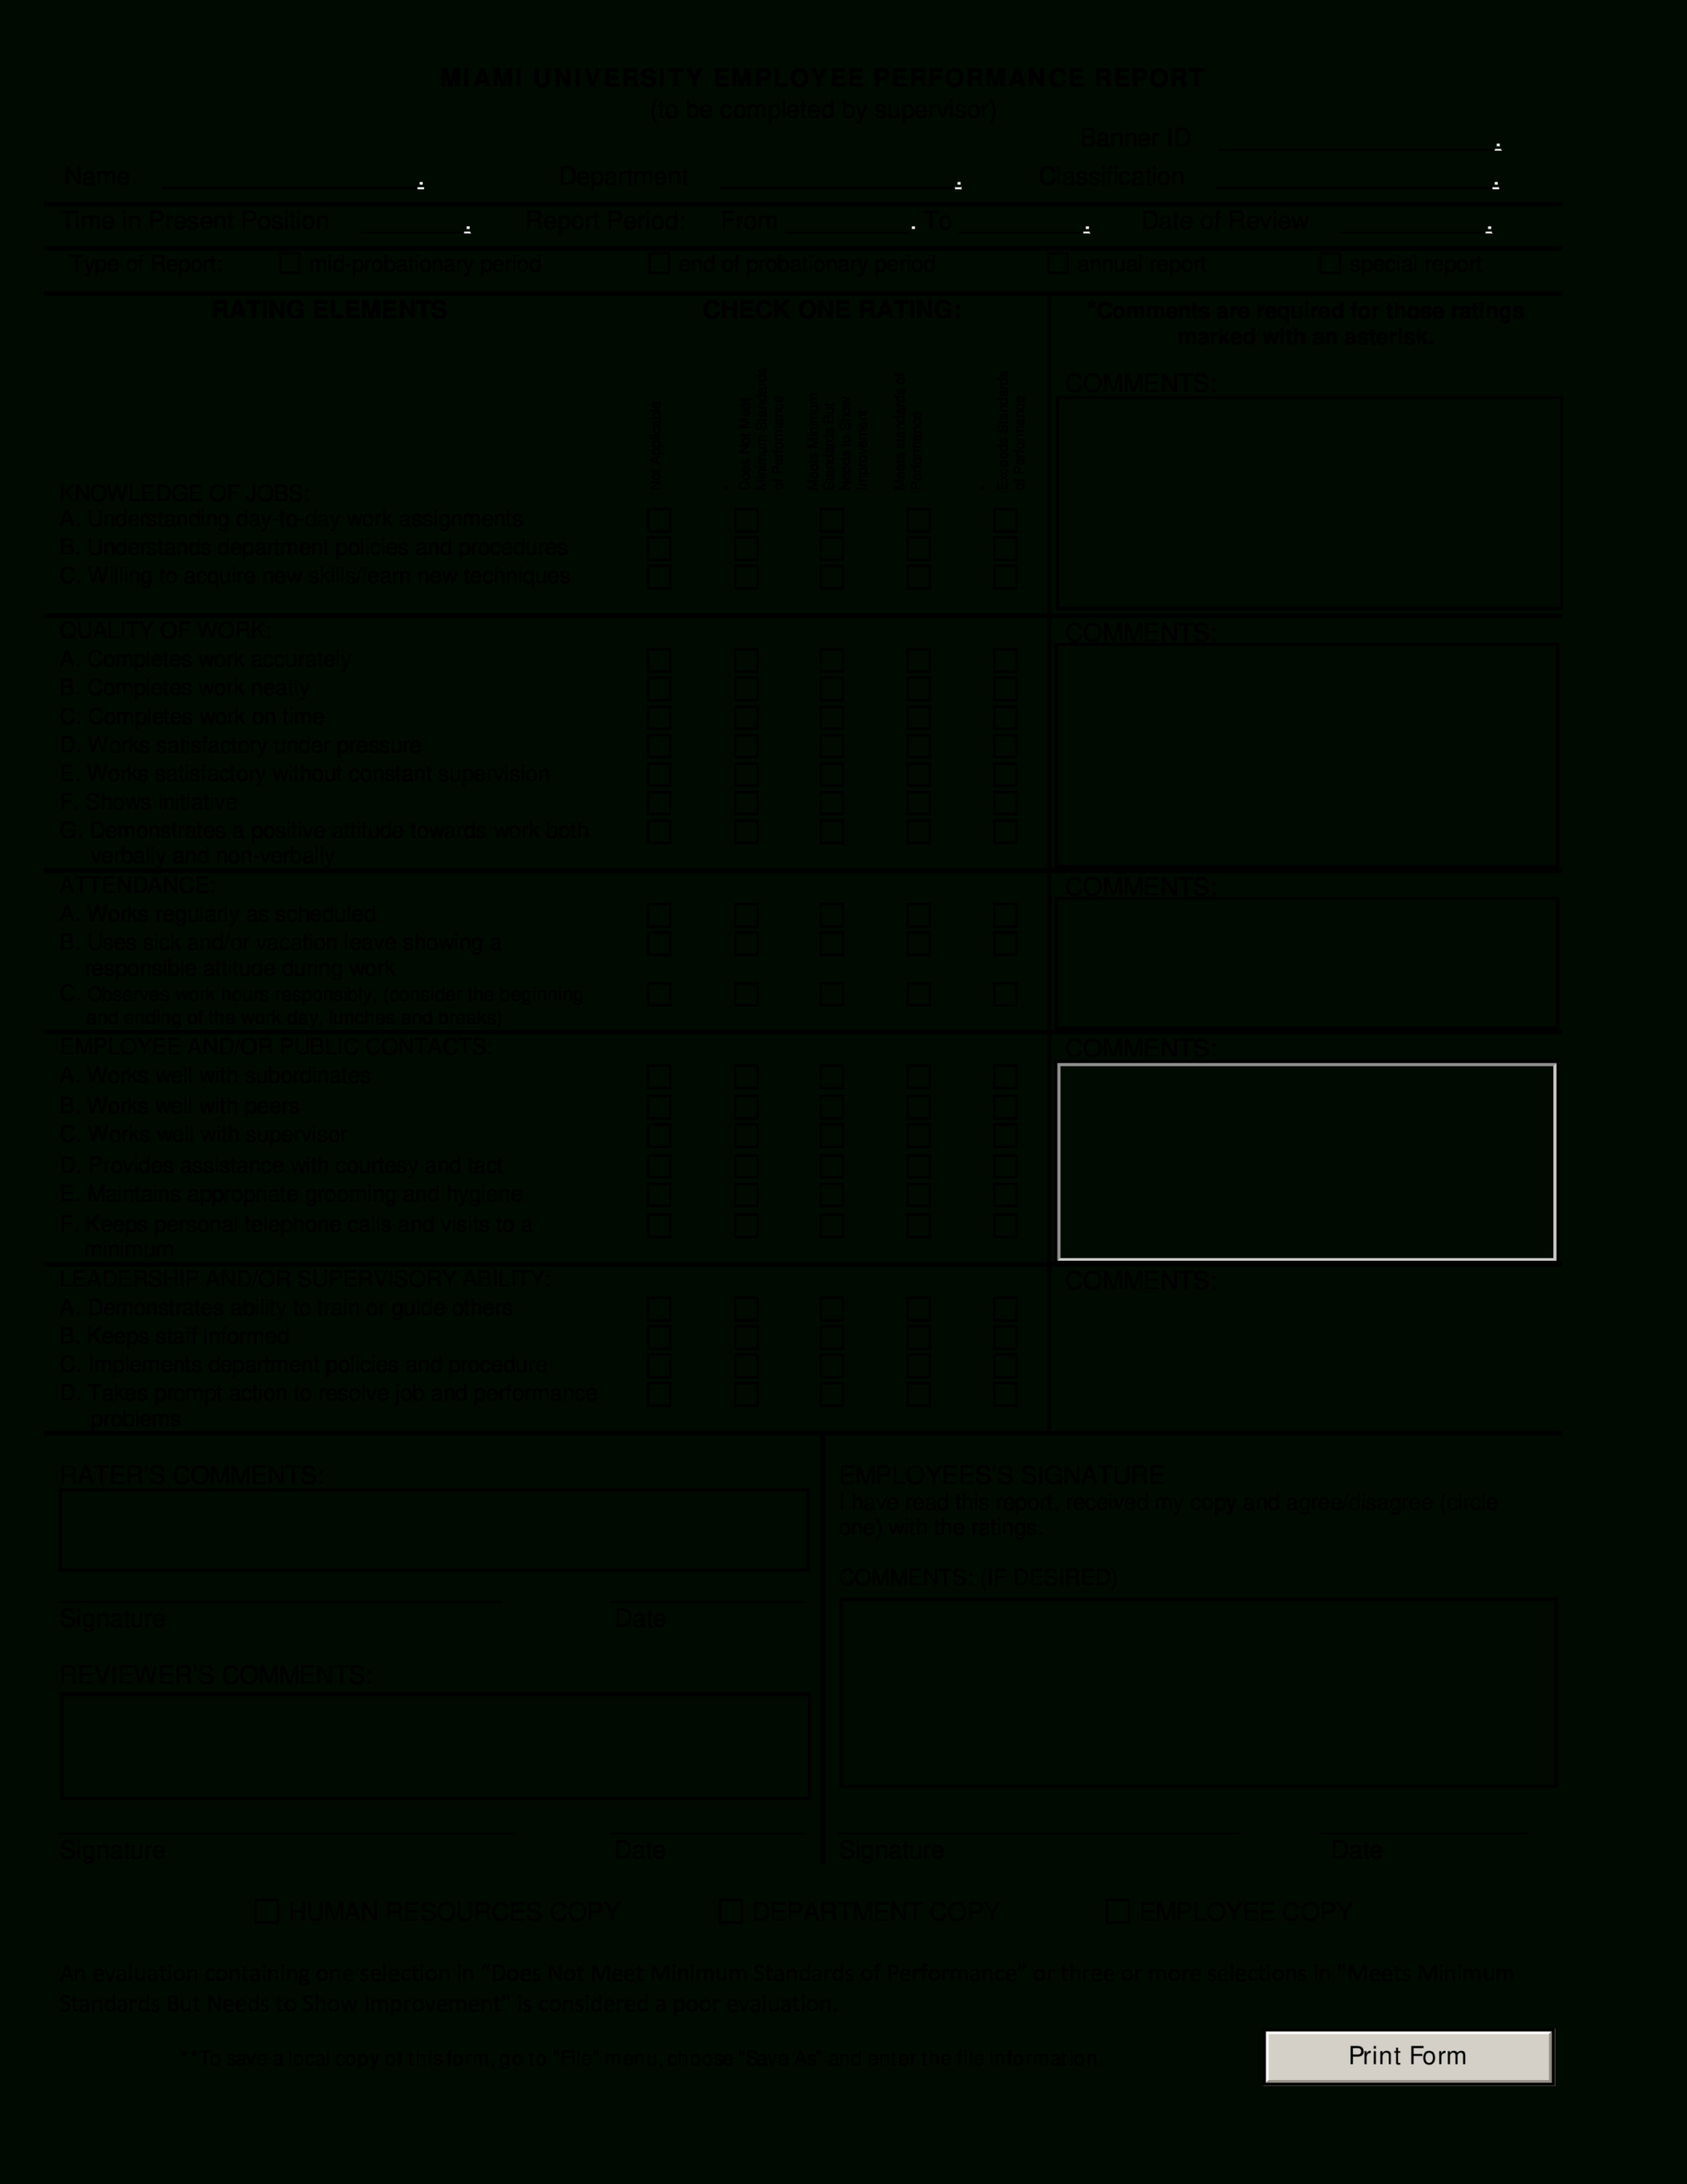 Employee Performance Report   Templates At Intended For Staff Progress Report Template